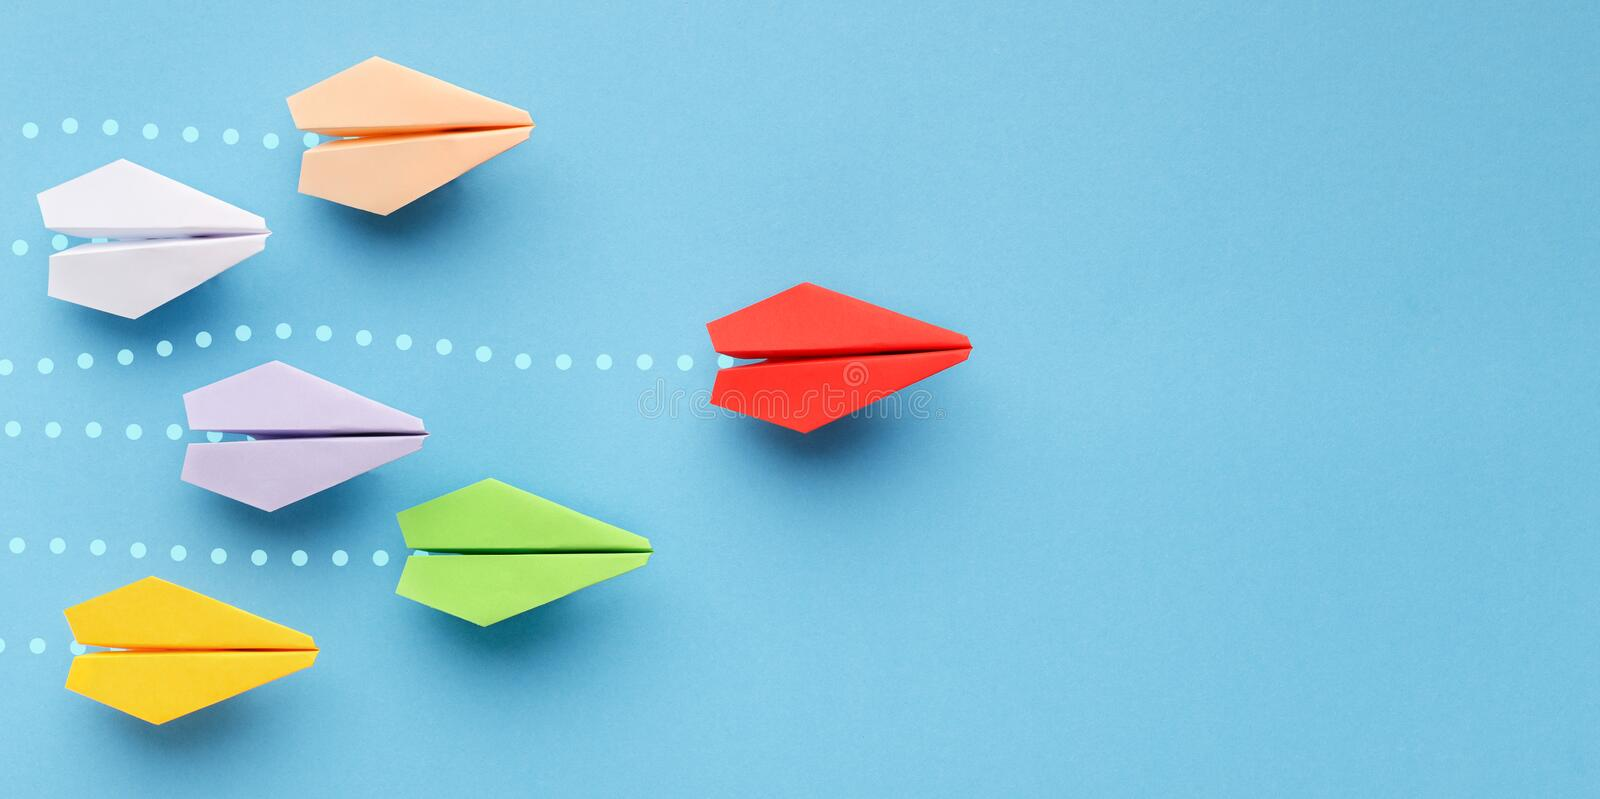 Red paper plane leading another ones, leadership concept. Opinion leadership concept. Red paper plane leading another colorful ones, influencing the crowd, blue royalty free stock photography